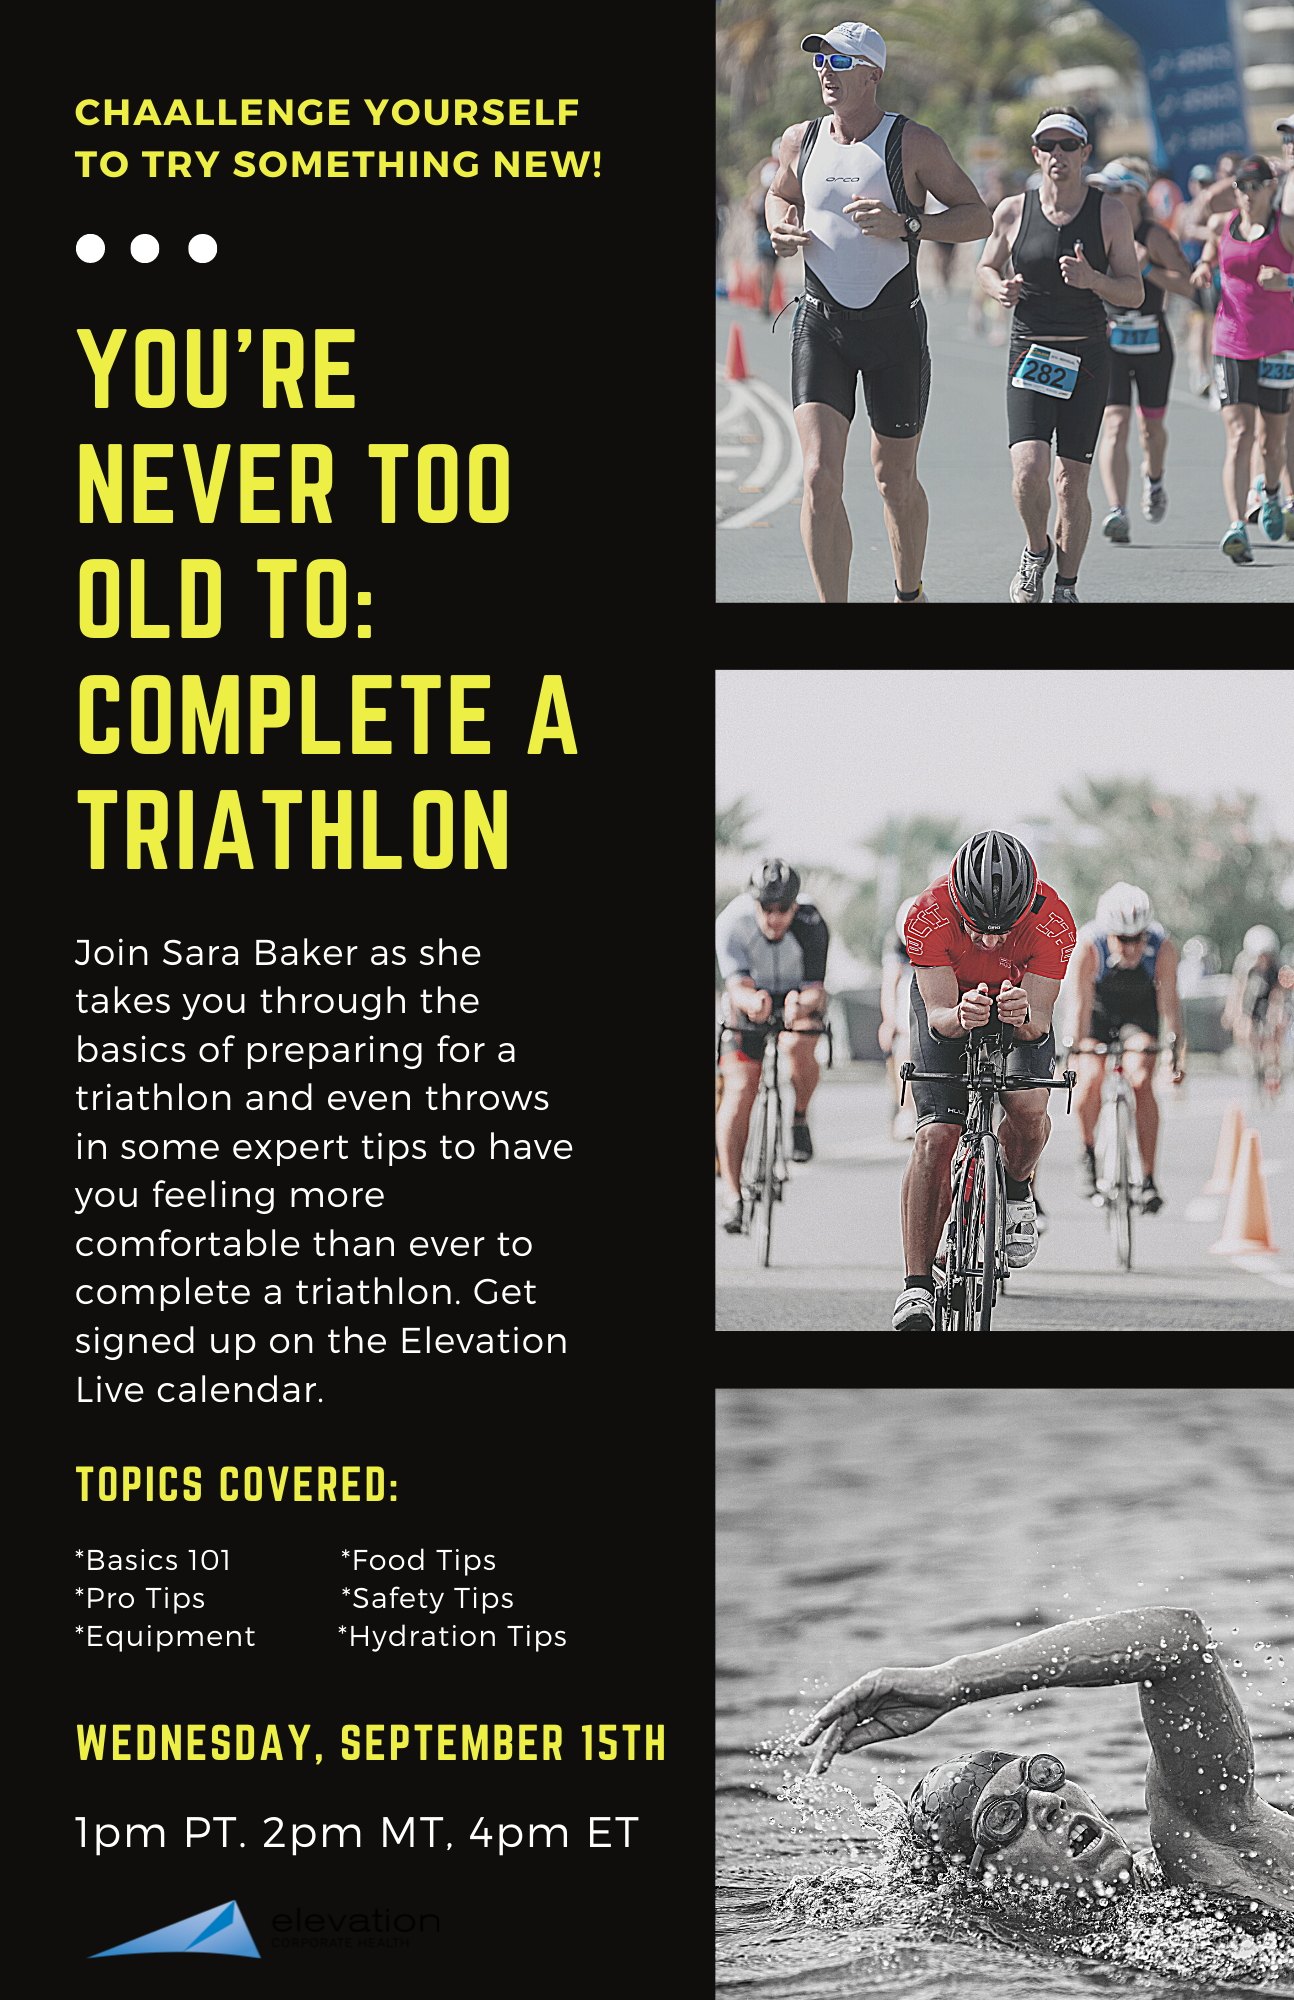 Youre-Never-Too-Old-To-Complete-a-Triathlon